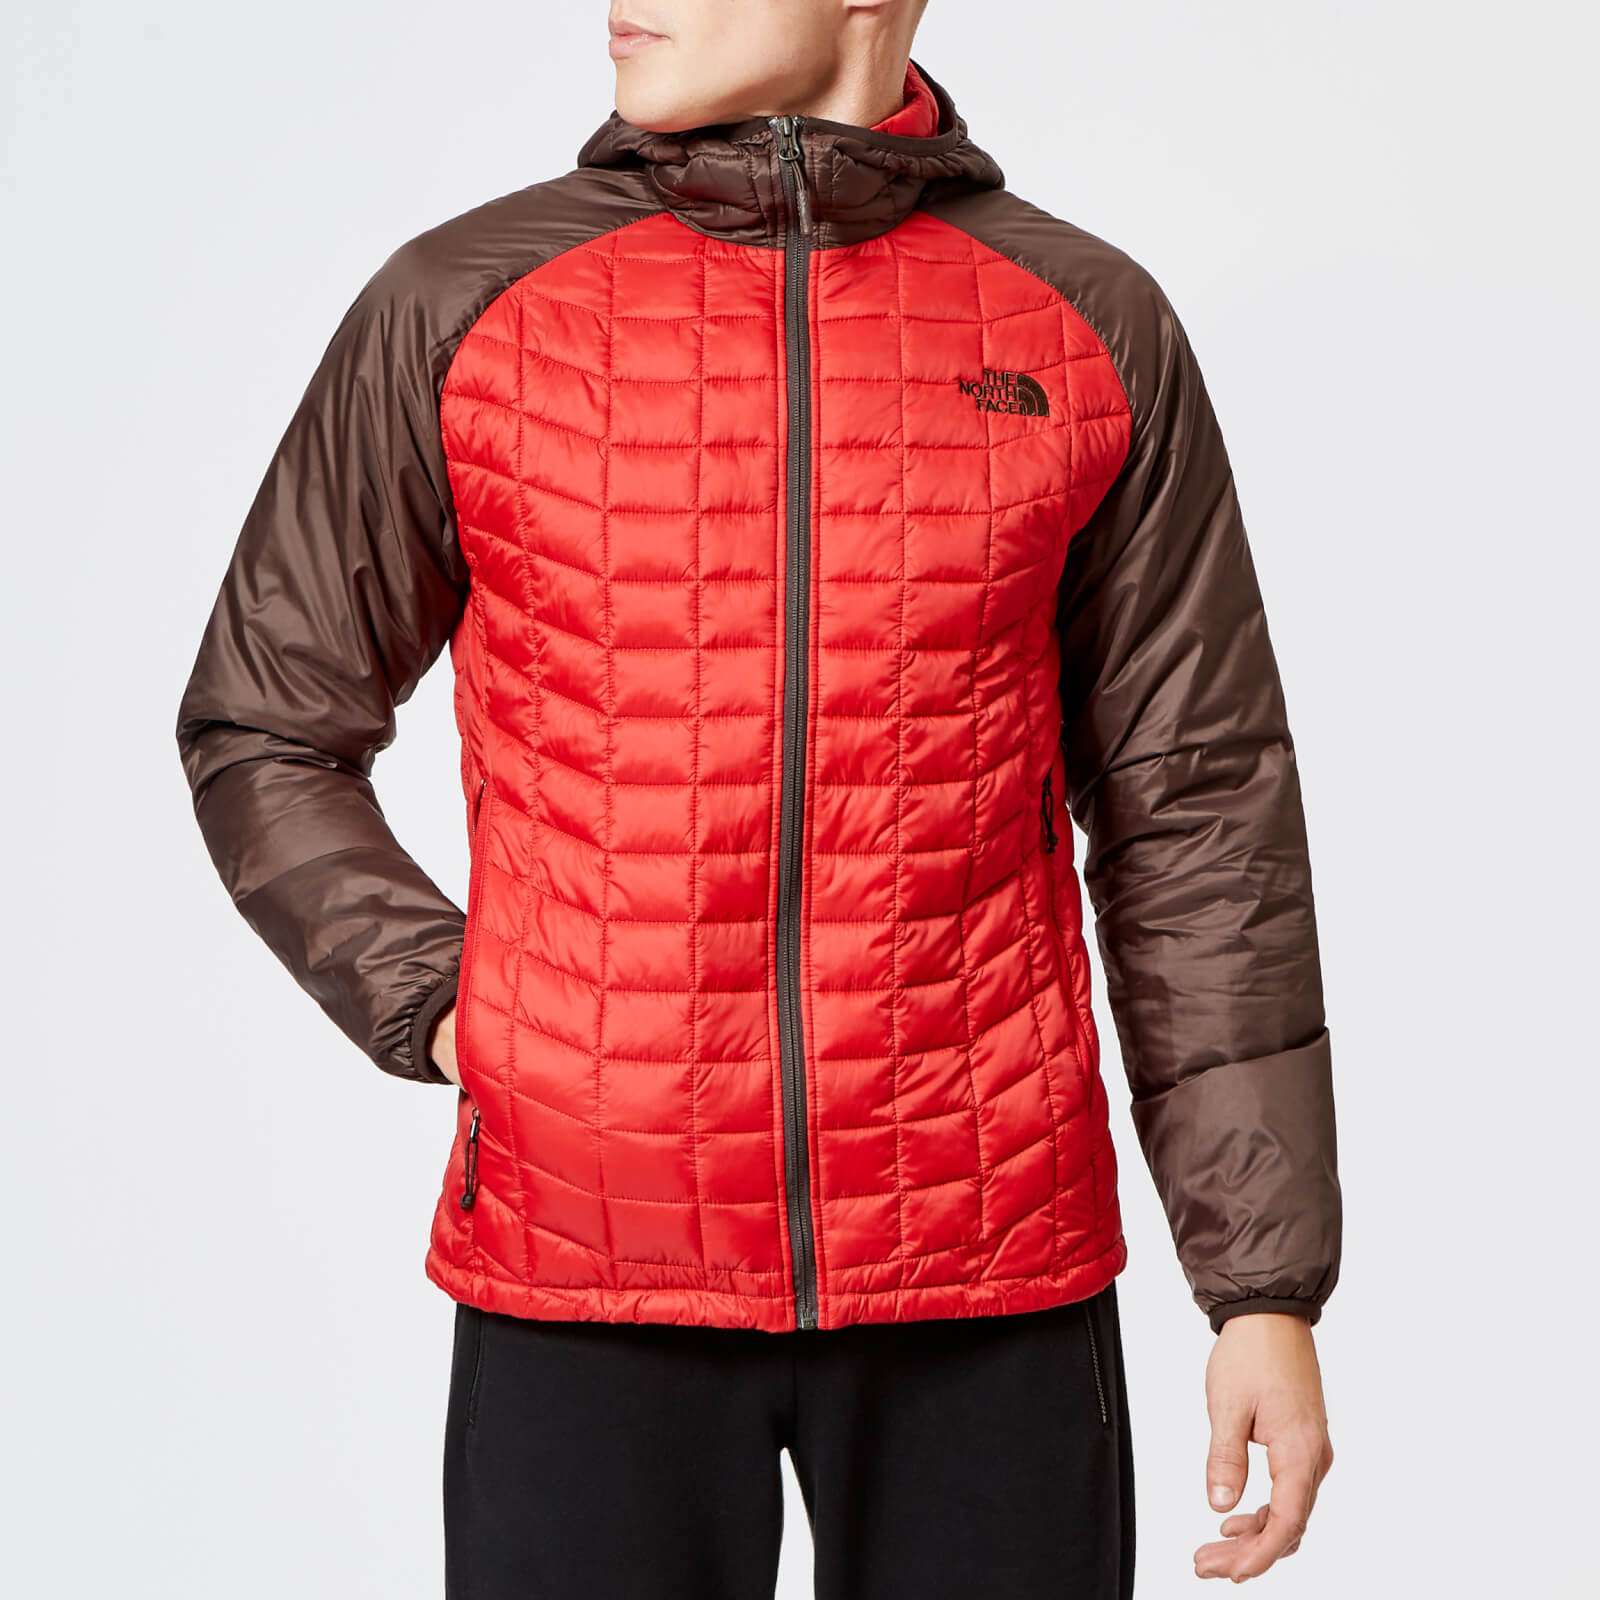 9c9608af9 The North Face Men's Thermoball Sport Hooded Jacket - Rage Red/Bittersweet  Brown